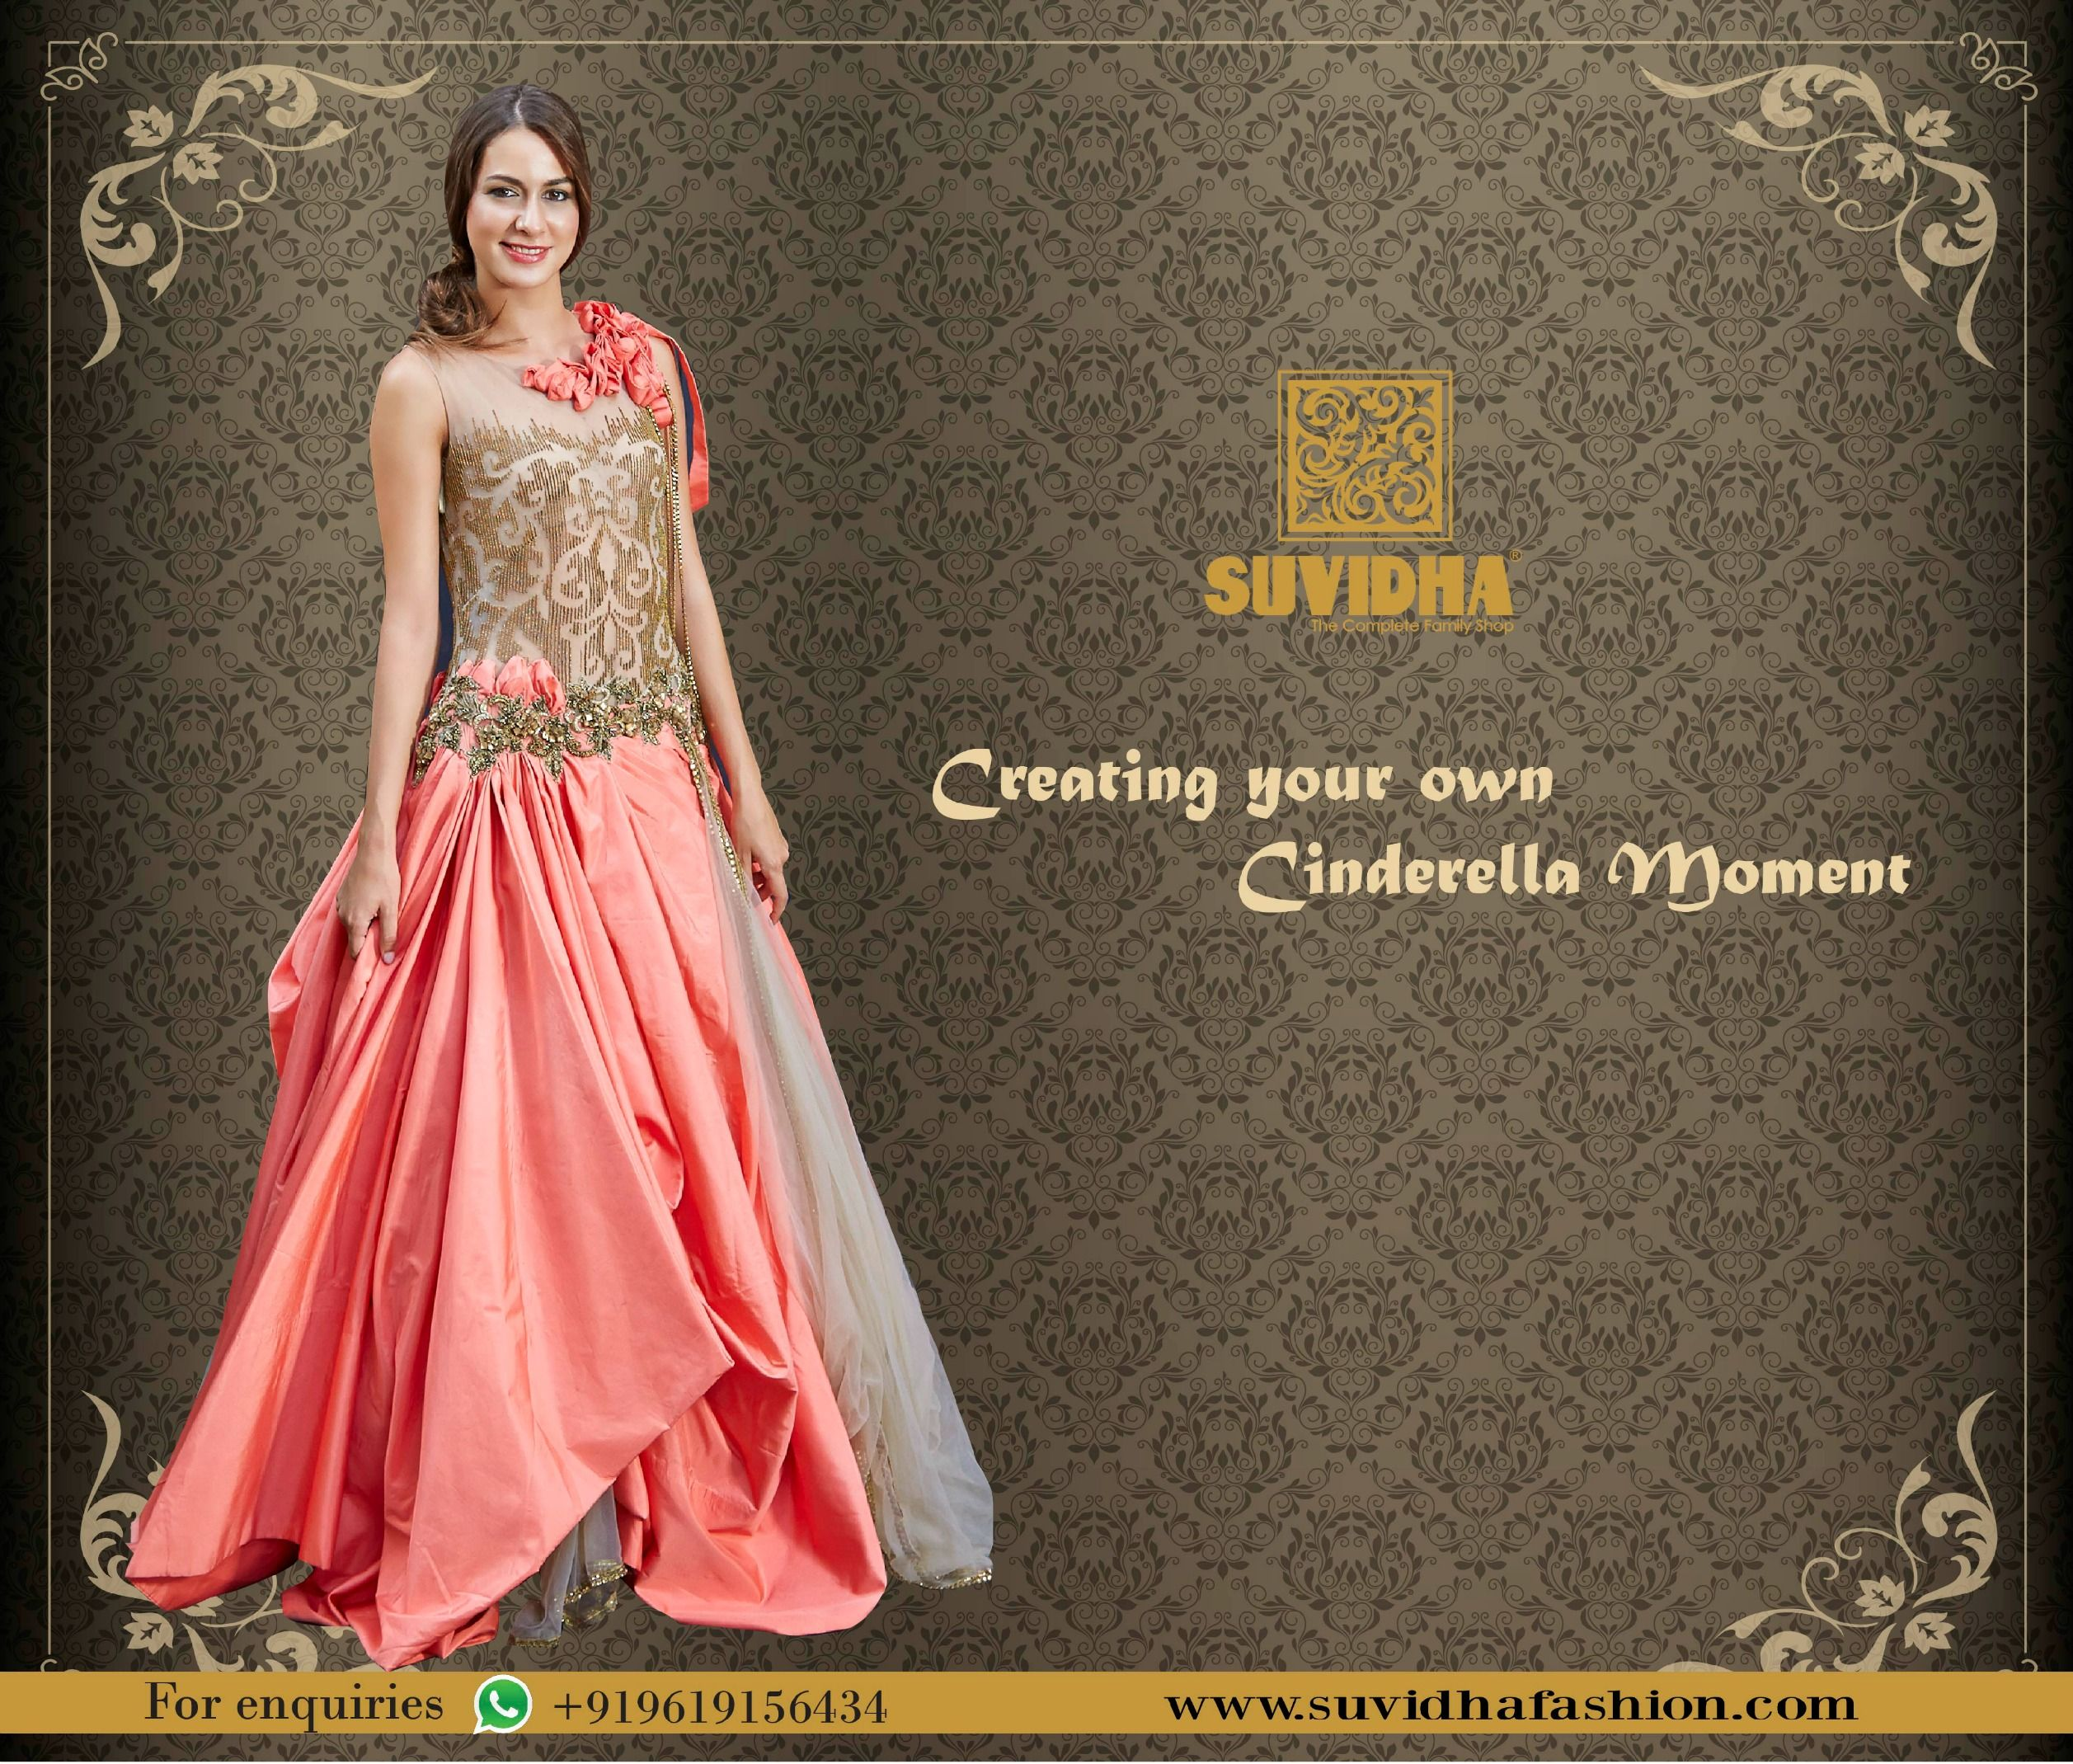 Suvidha Believes in making your fairy tales come true by turning you into a princess with our Royal Gown collection. Get your own cinderella moment with suvidha.  #WeddingSpecial #SuvidhaFashion #TheCompleteFamilyShop